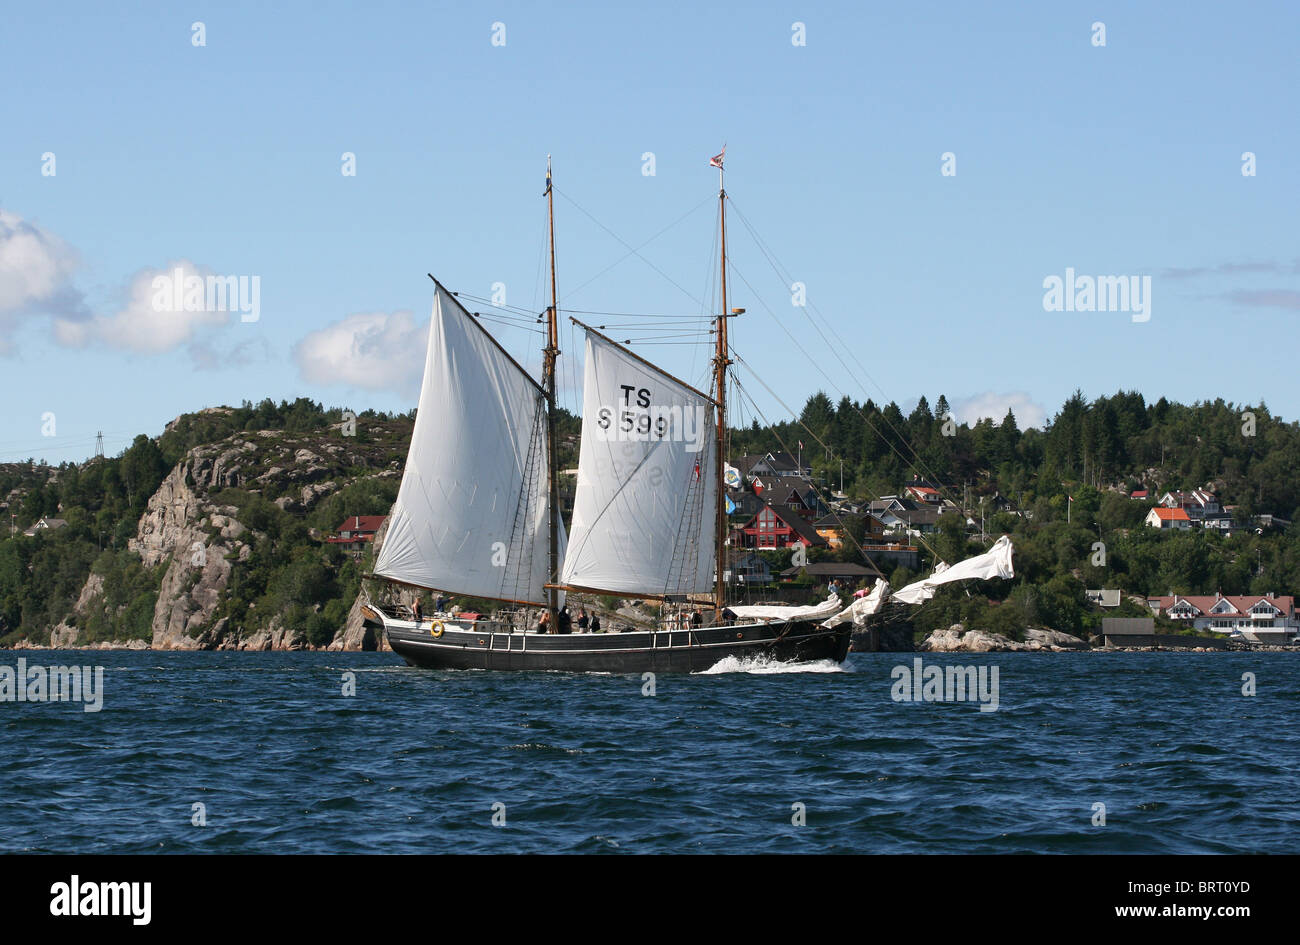 Constantia,The Tall Ships Races 2008, Bergen - Stock Image